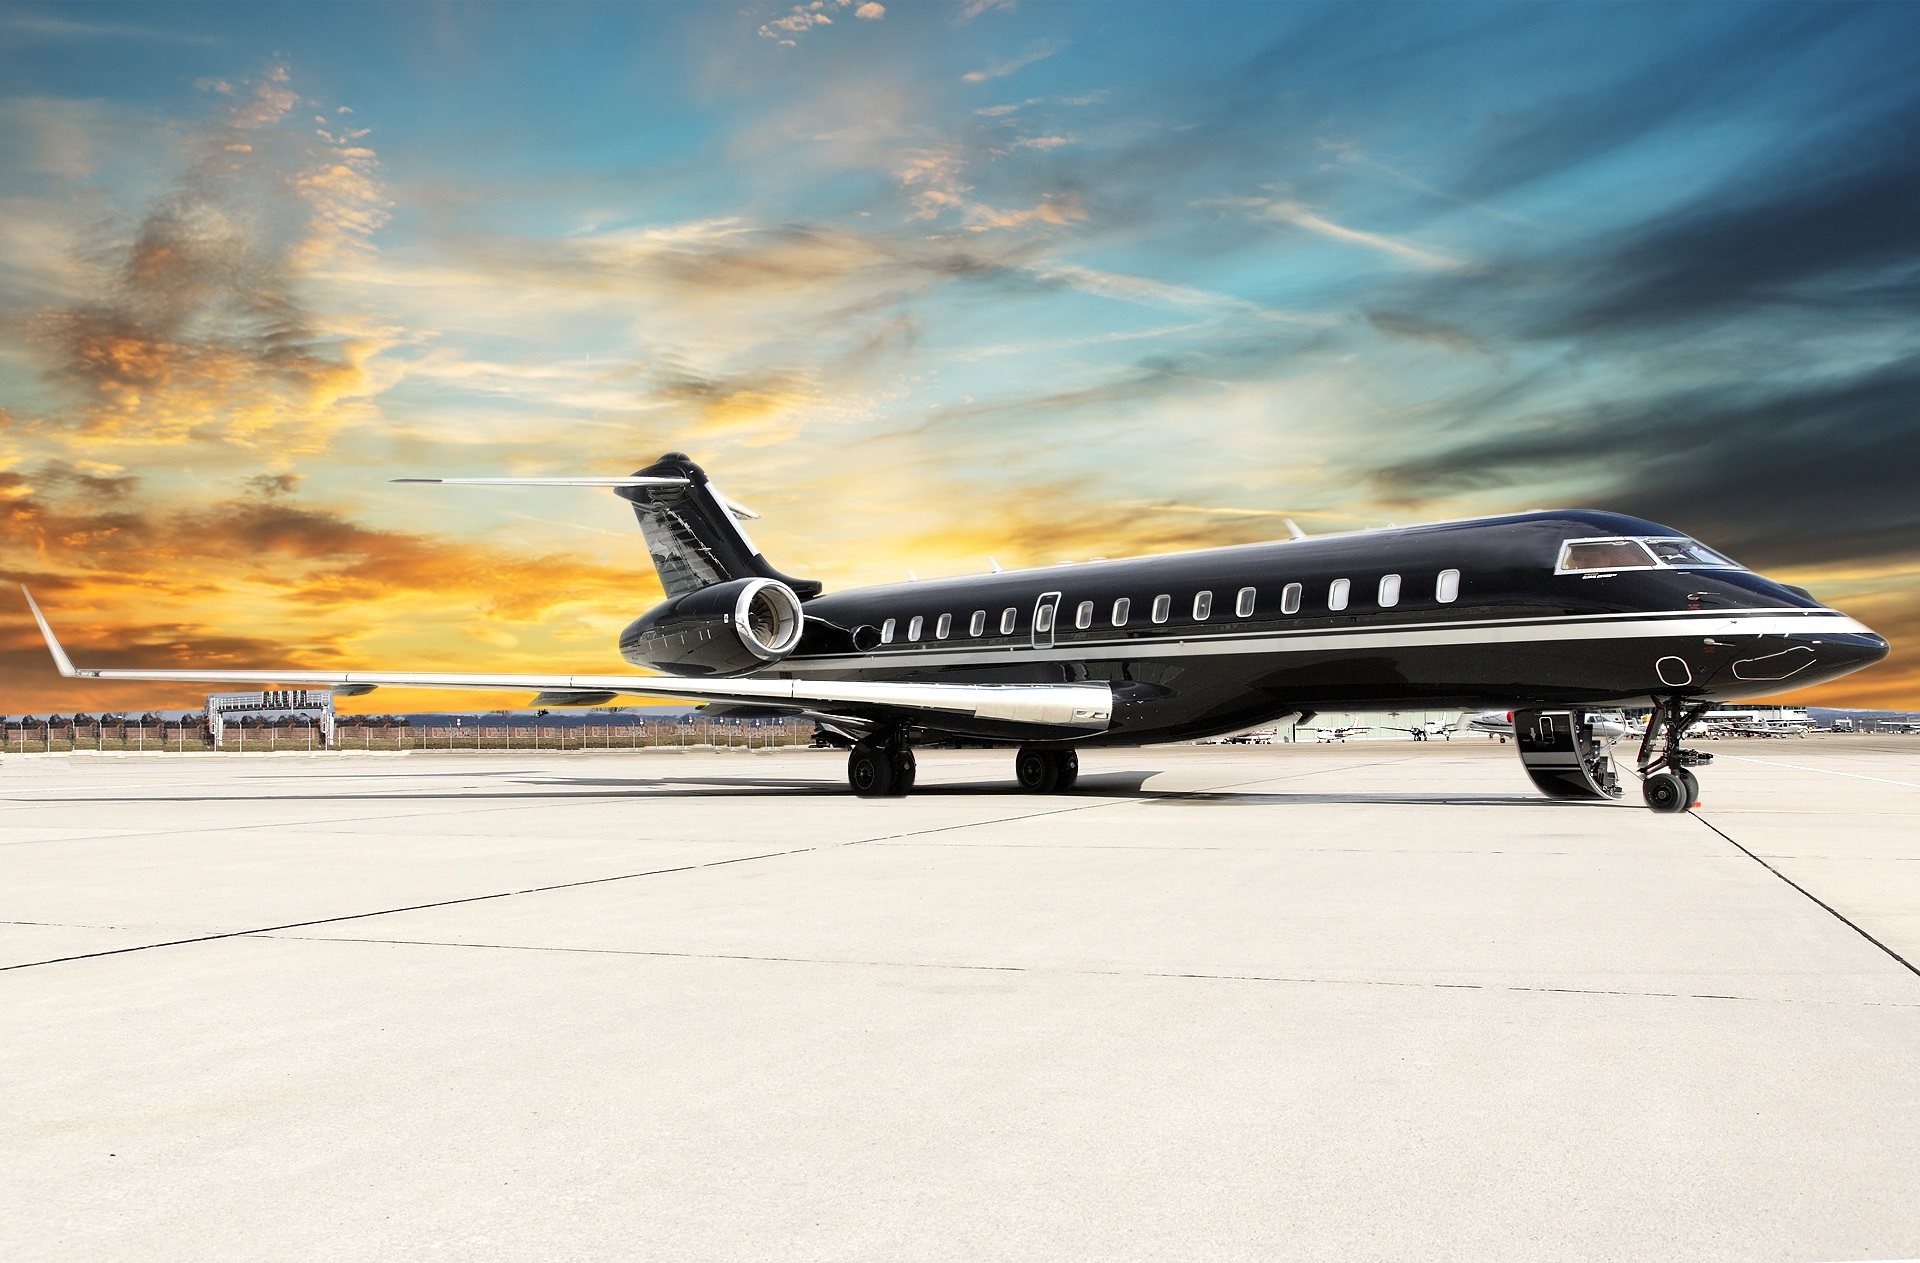 Global Express, SN 9005 For Sale